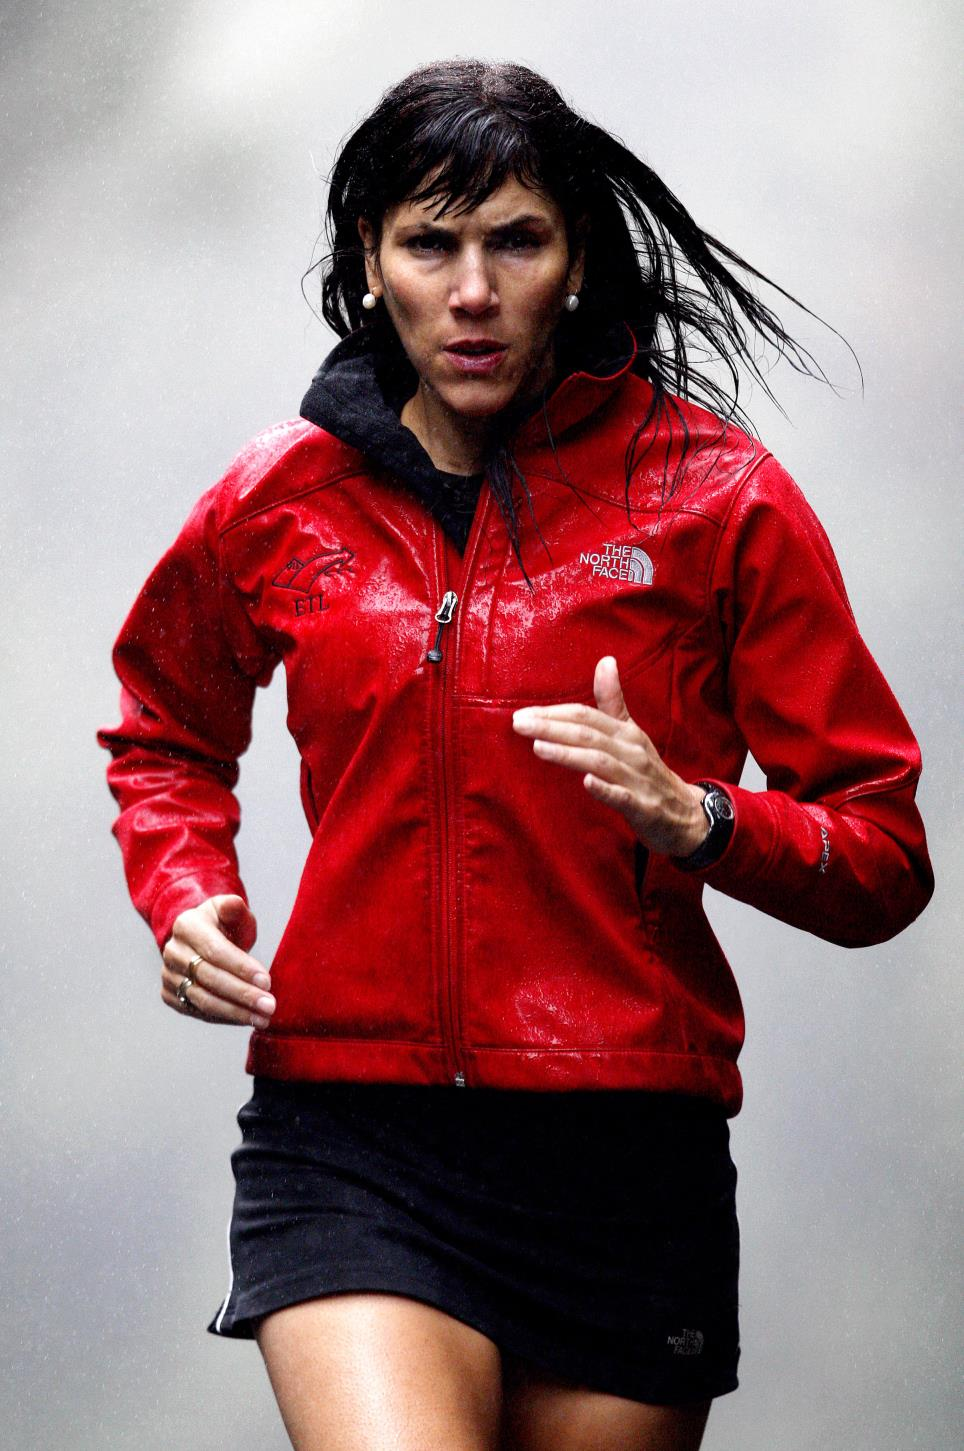 Lisa Tamati Adventure Athlete, Author, Entrepreneur